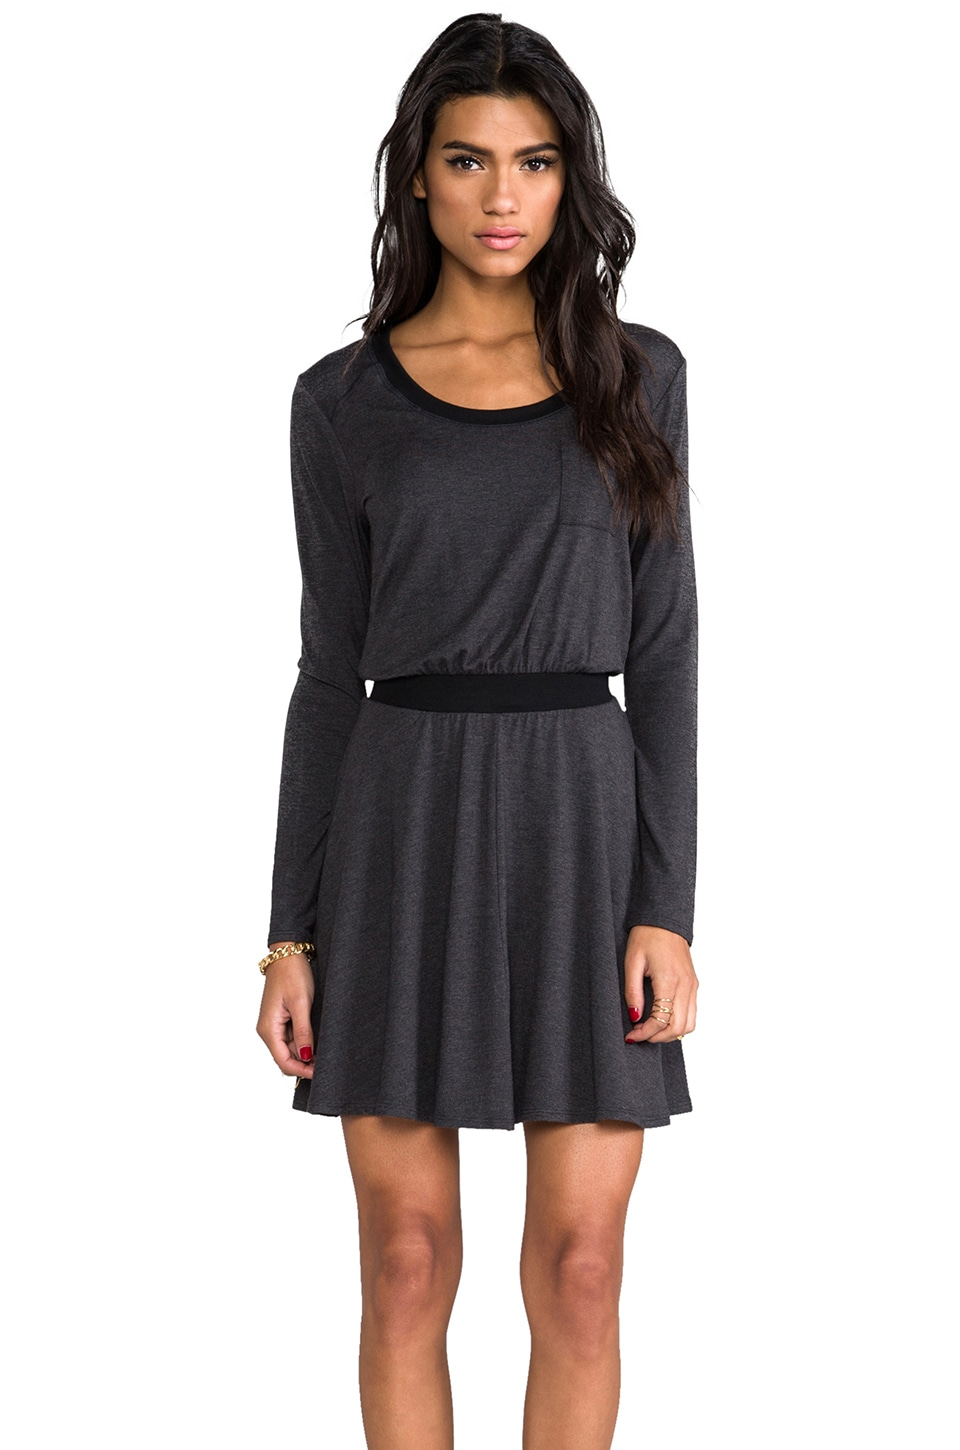 Heather Flounce Mini Dress in Heather Black